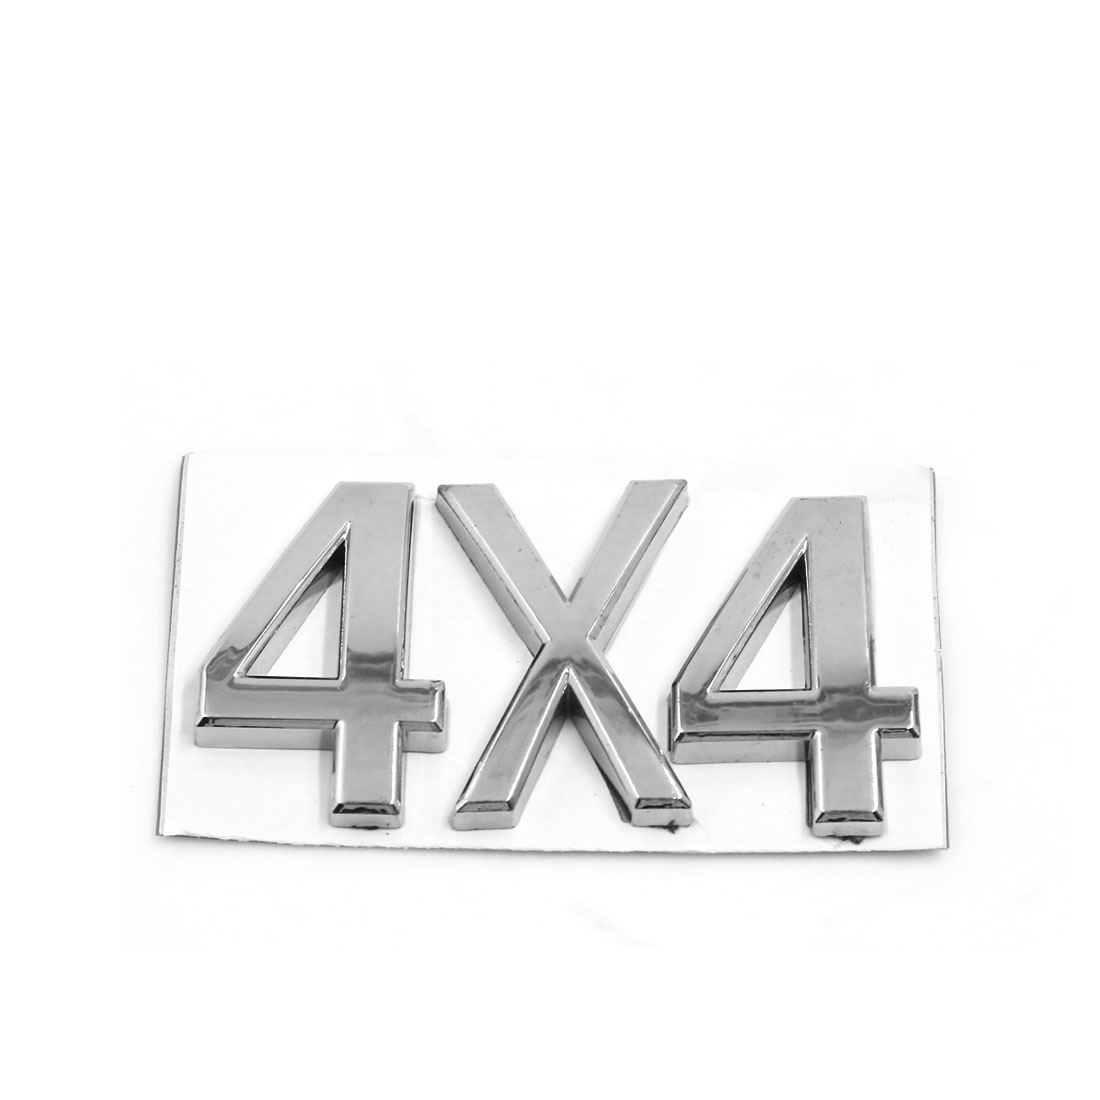 Silver Tone Plastic 4X4 Design Grille Emblem Badge Decoration for Car Auto